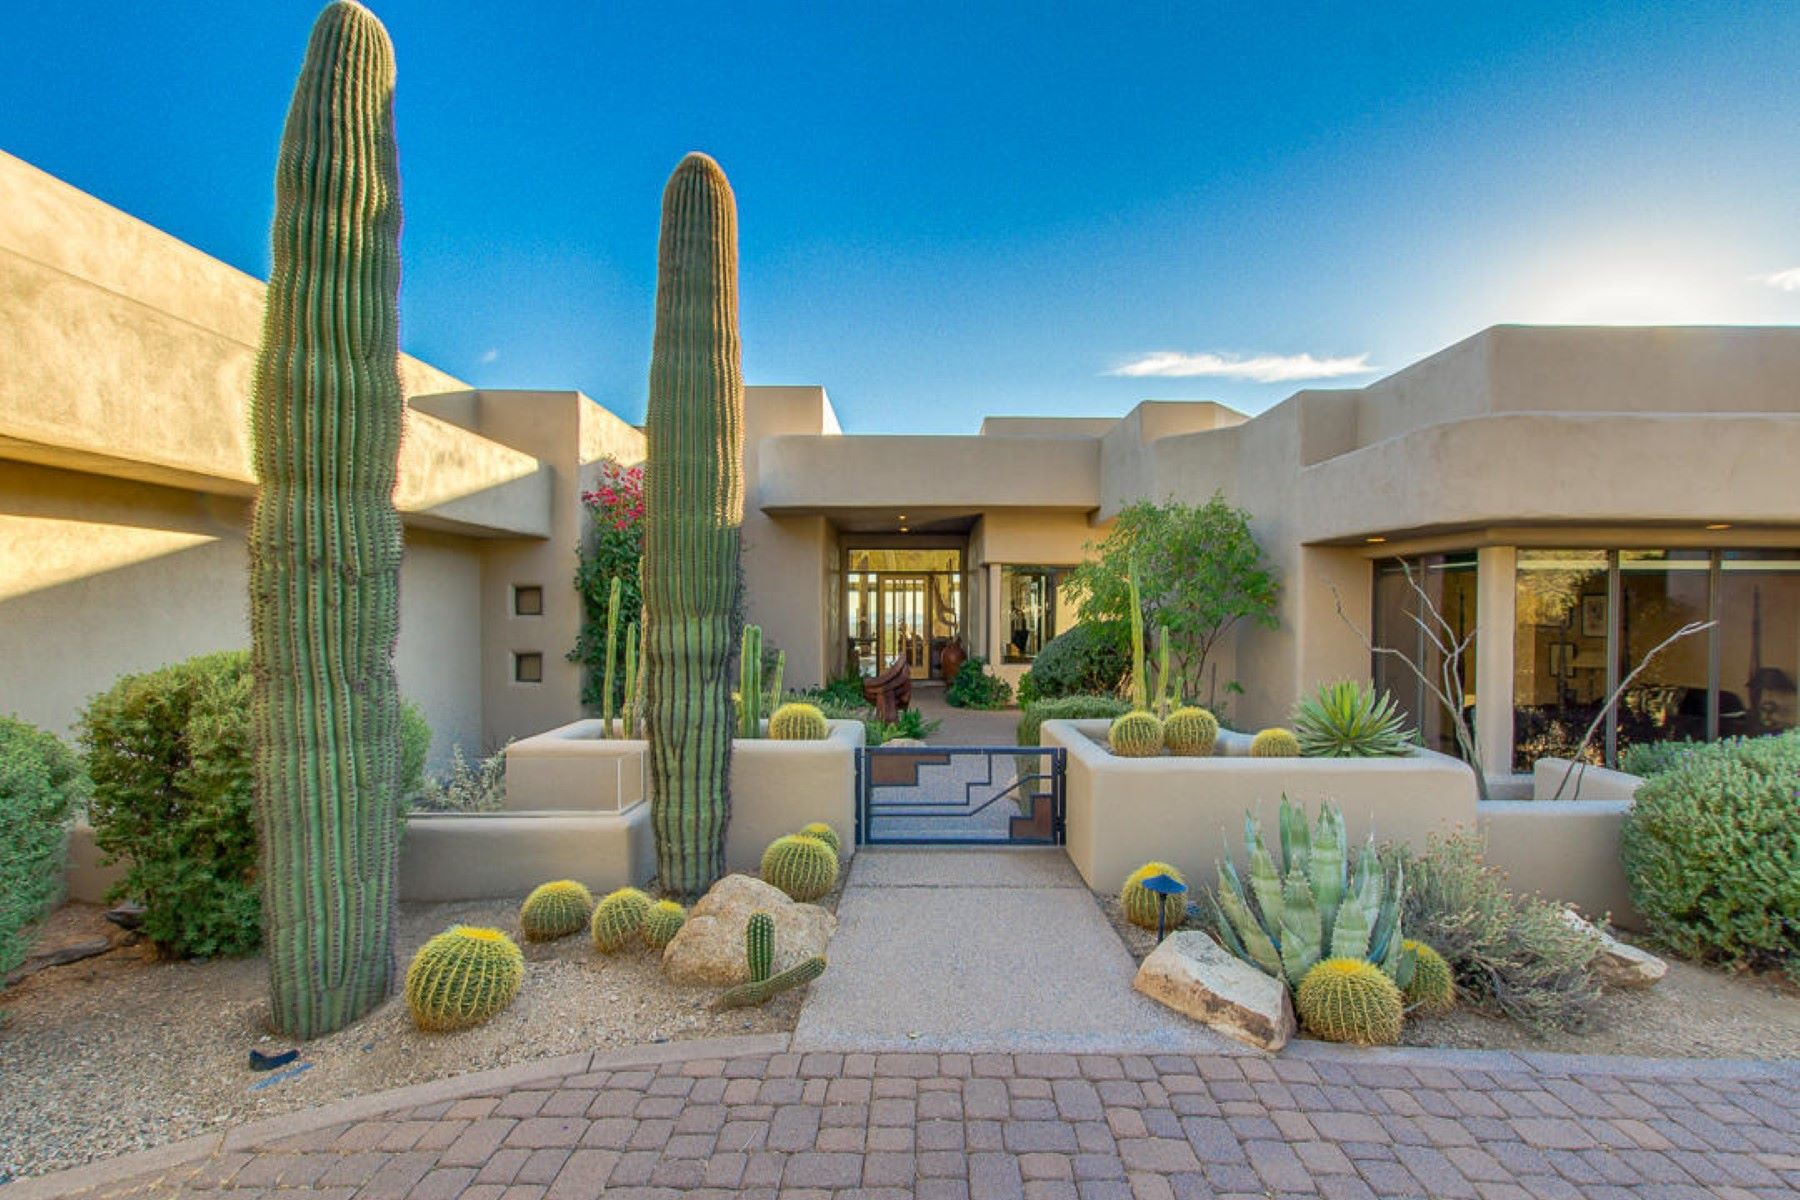 Single Family Home for Sale at Spectacular home perched high above the valley on Black Mountain 6609 E El Sendero Rd Carefree, Arizona, 85377 United States